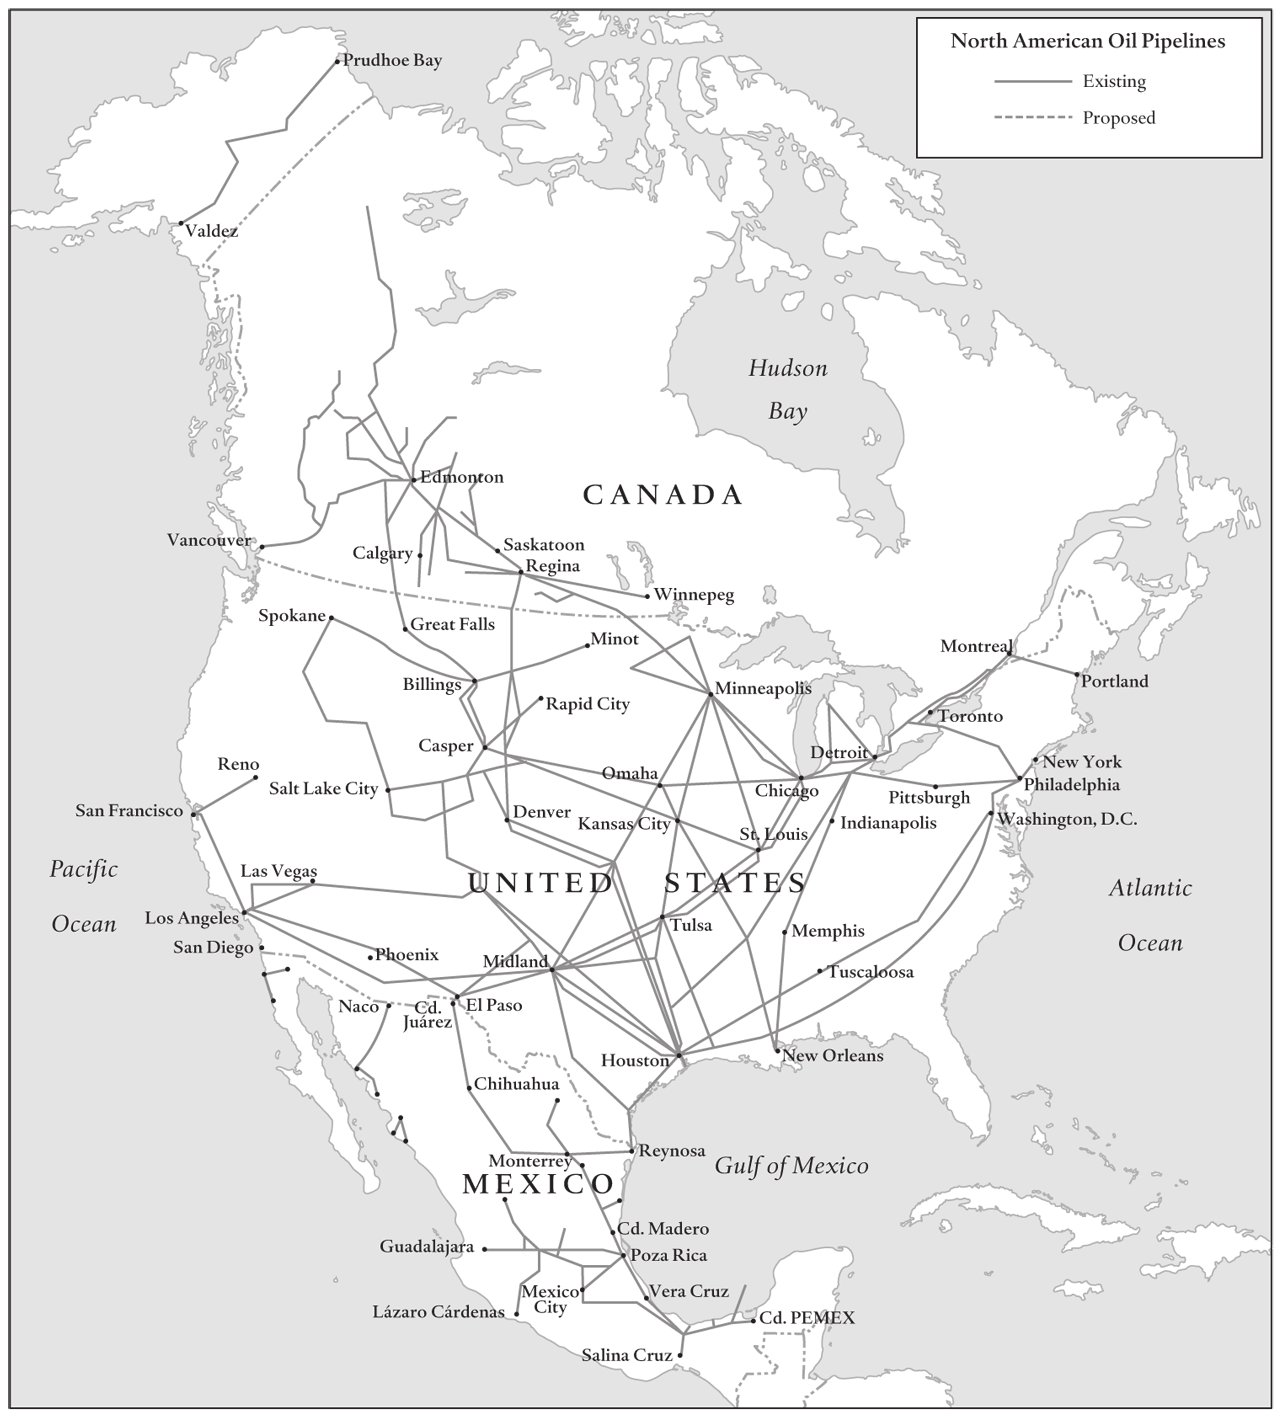 26 North America Figure 7: North American OIL Pipelines Sources: Canadian Energy Pipeline Association; Pemex; U.S. EIA; Canadian Association of Petroleum Producers.